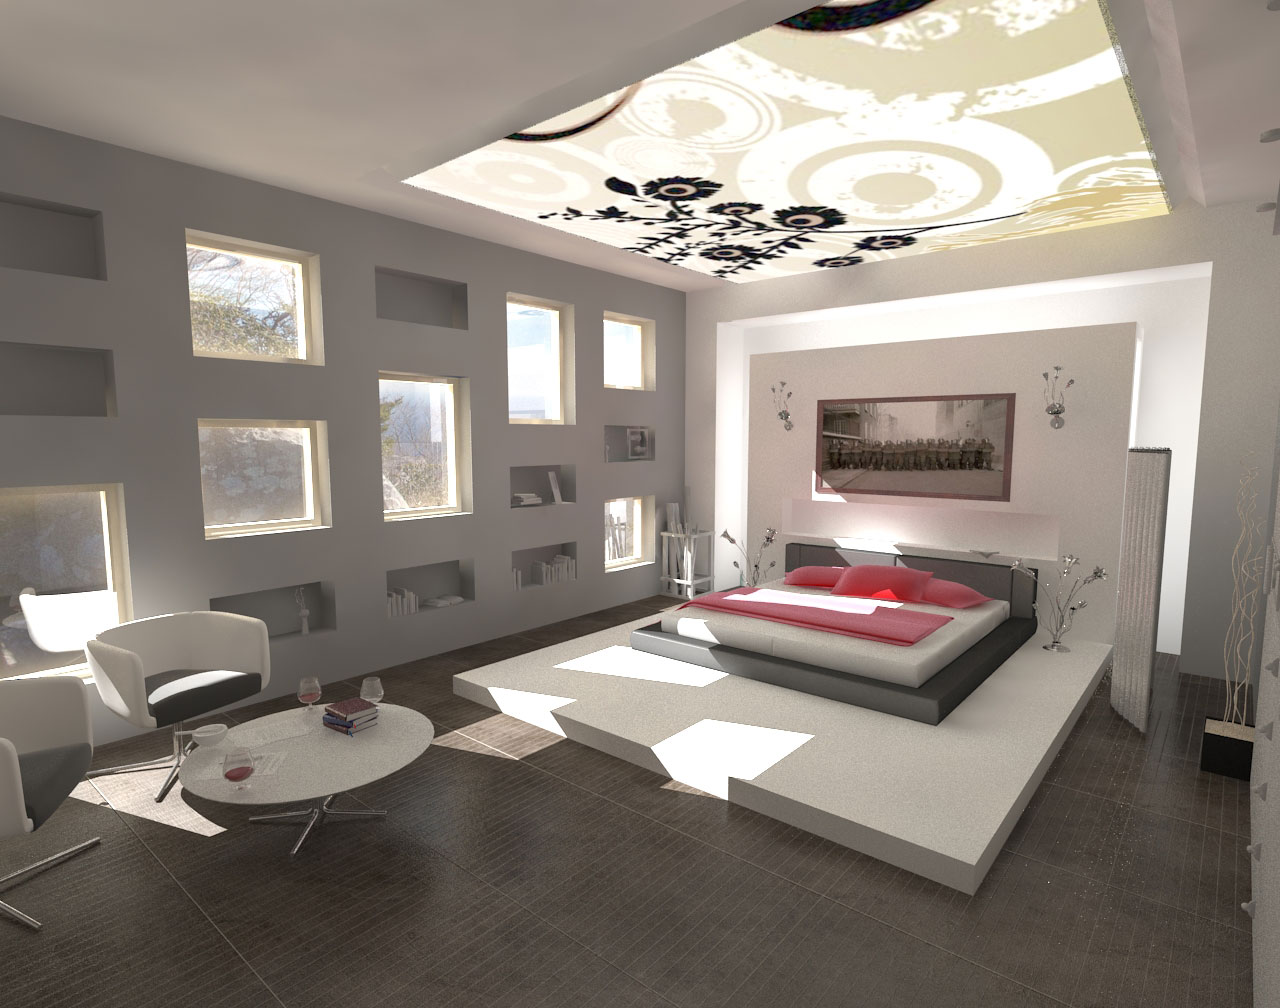 Modern Minimalist Bedroom Design: Decorations: Minimalist Design